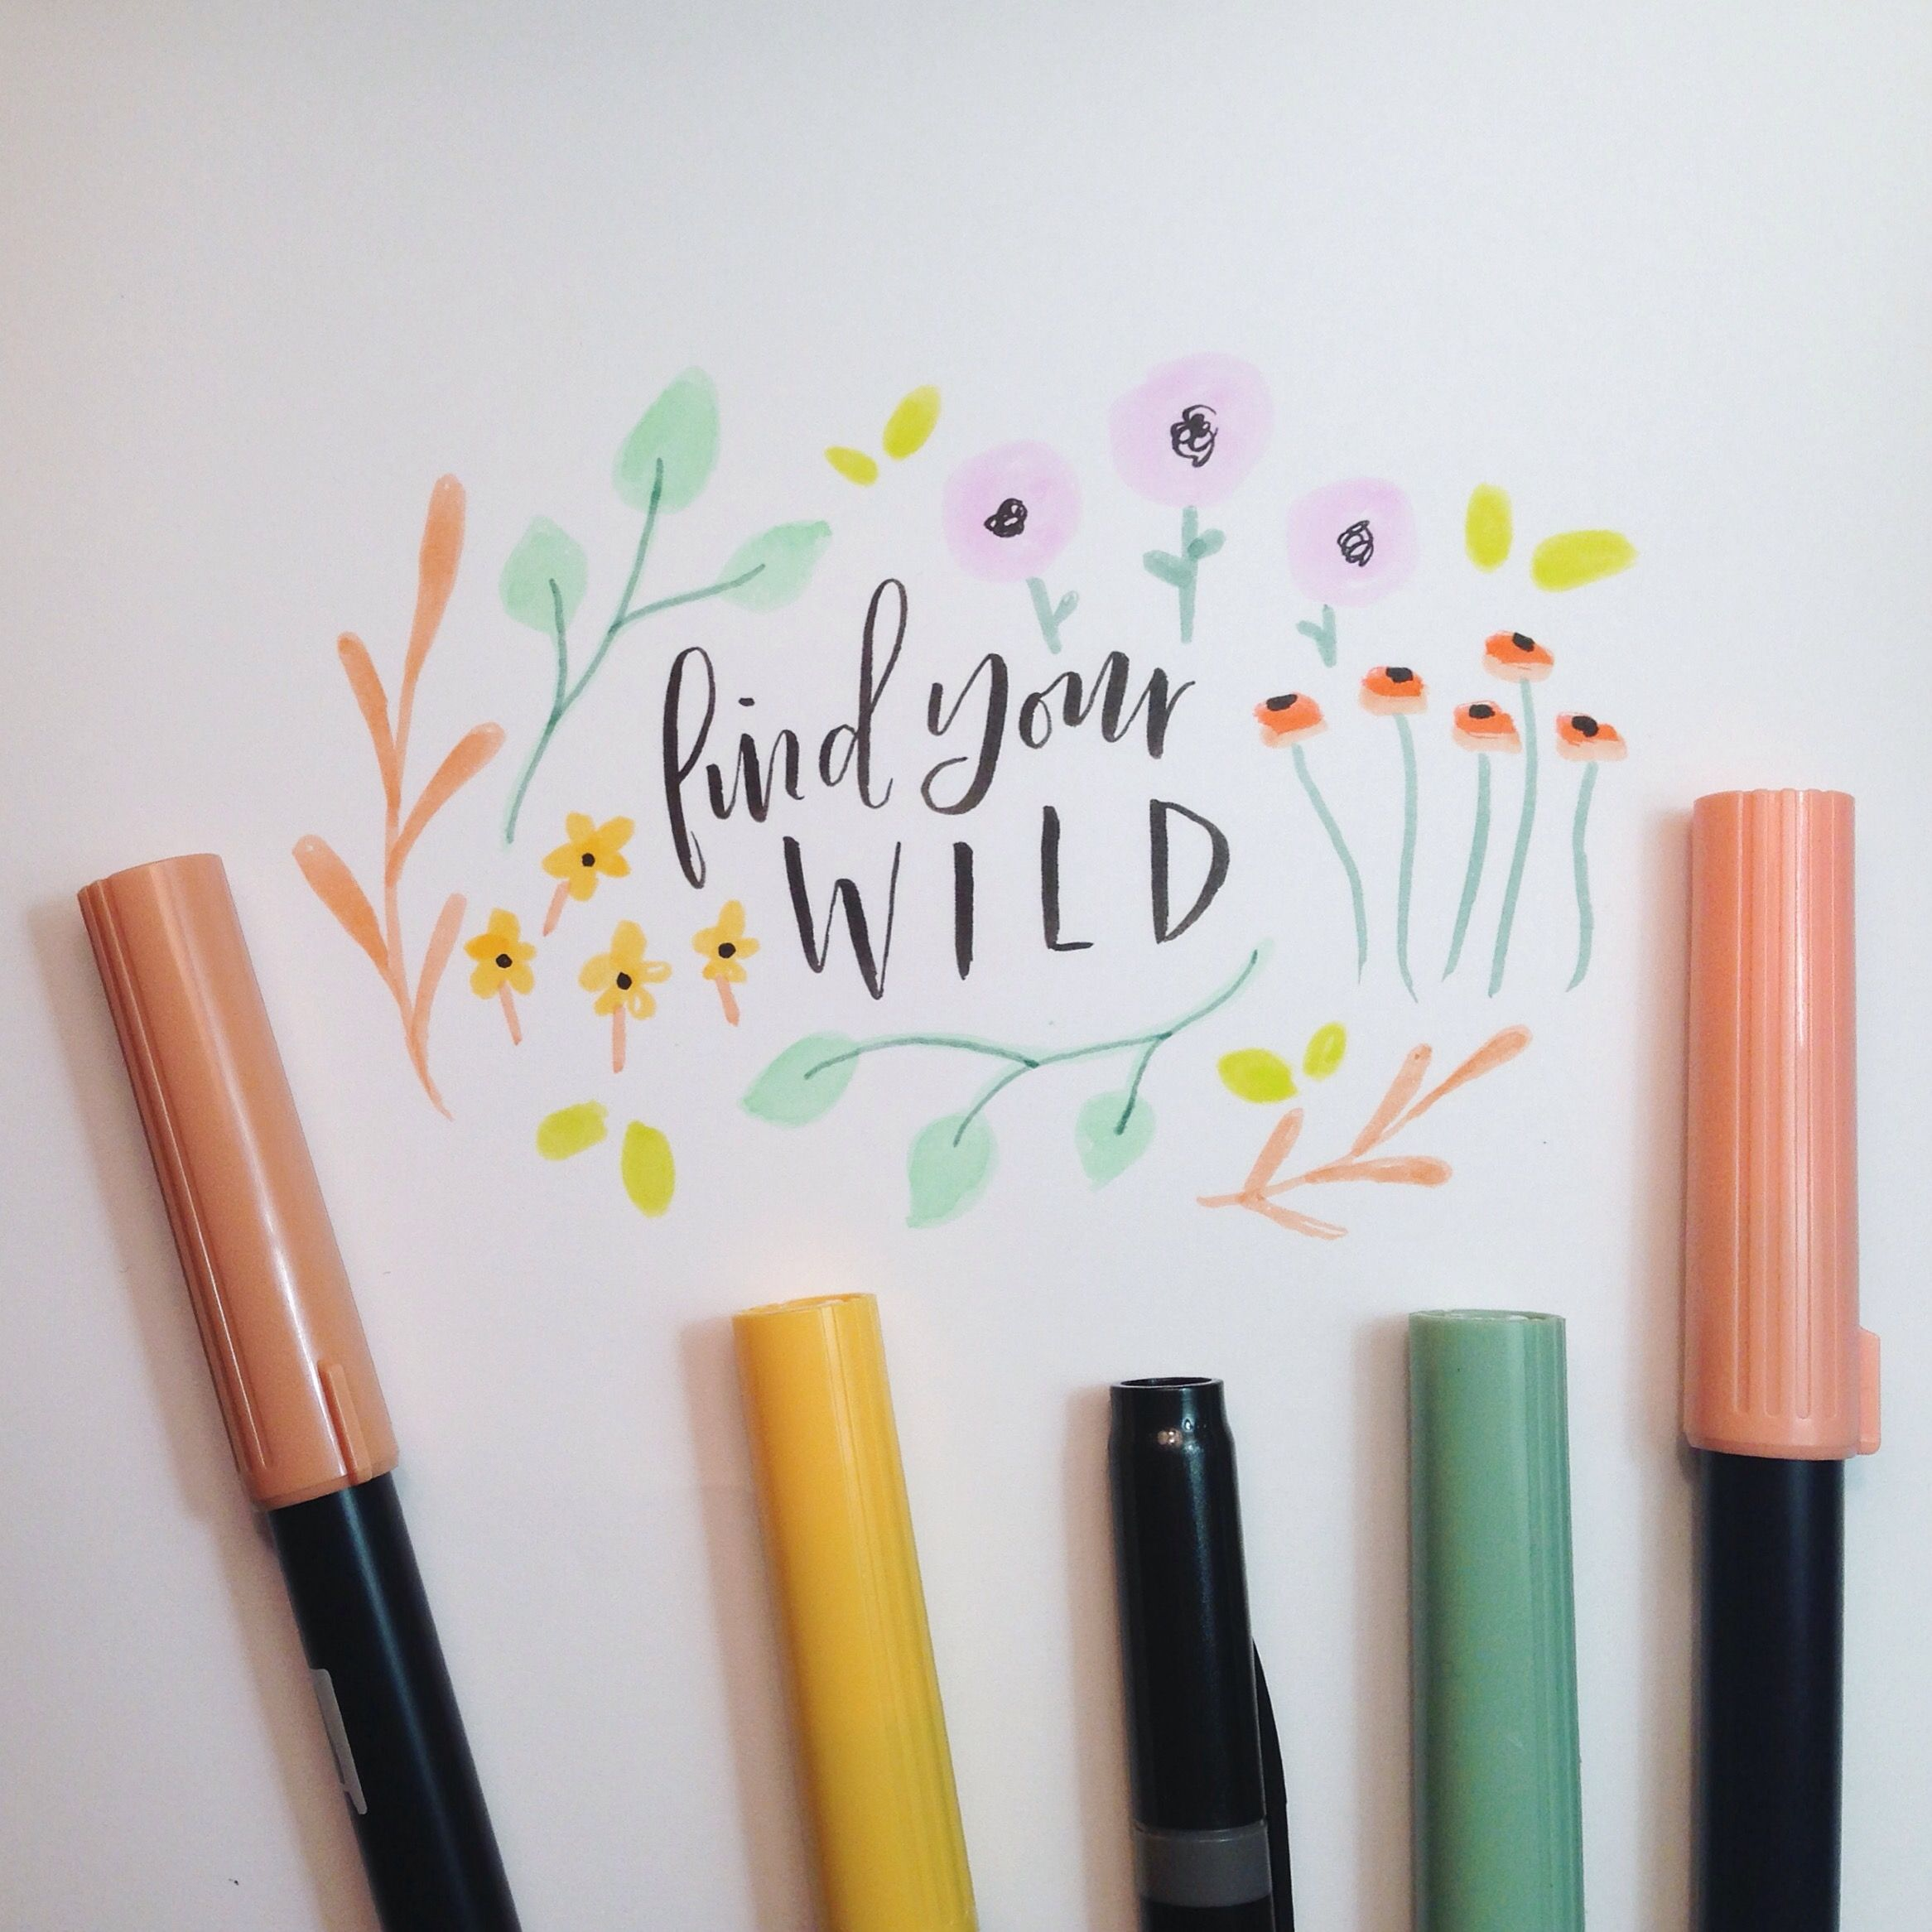 Find Your W I L D Drawn With Tombow Dual Brush Pens And Written